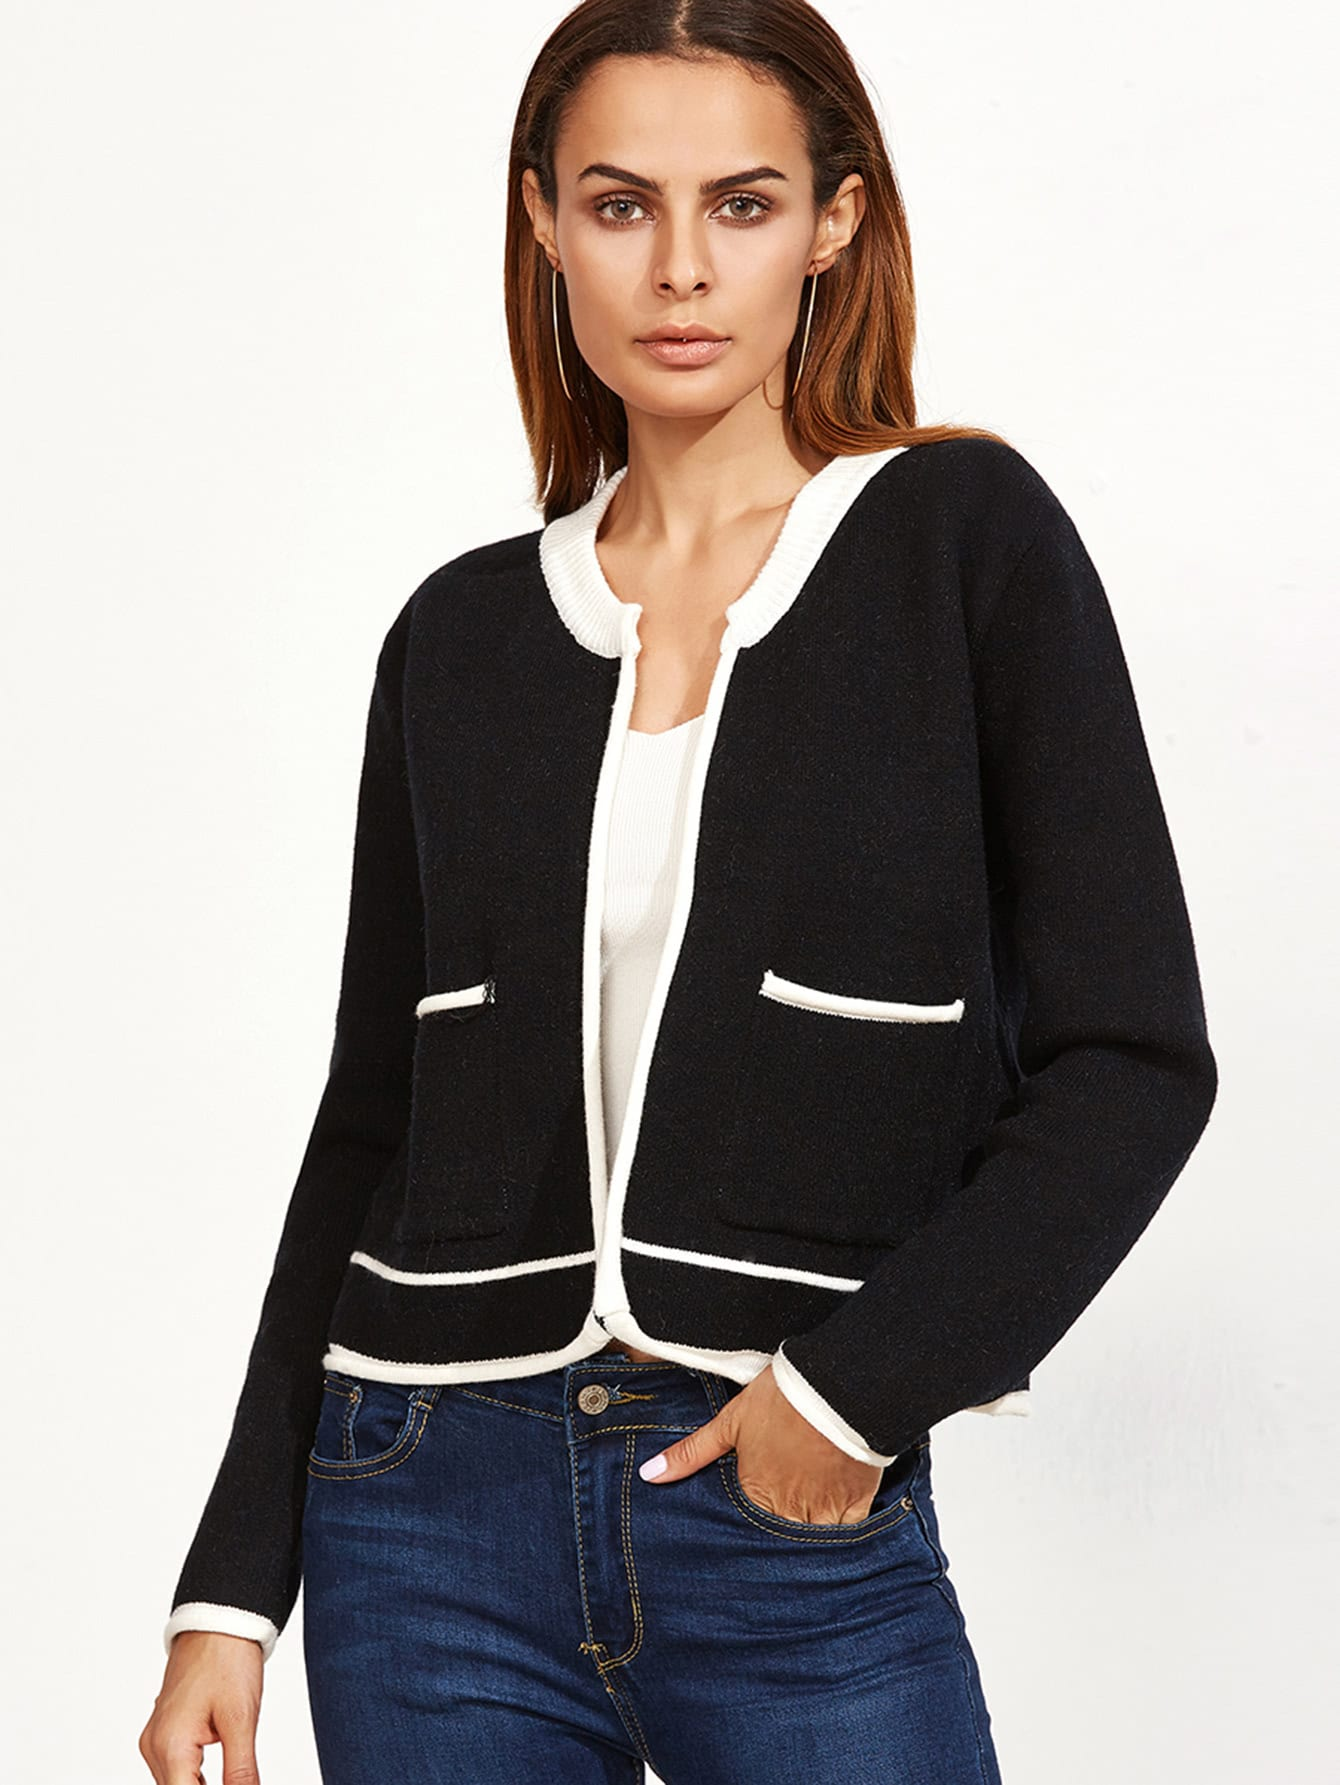 Black Contrast Trim Open Front Cardigan With Pocket sweater160929469